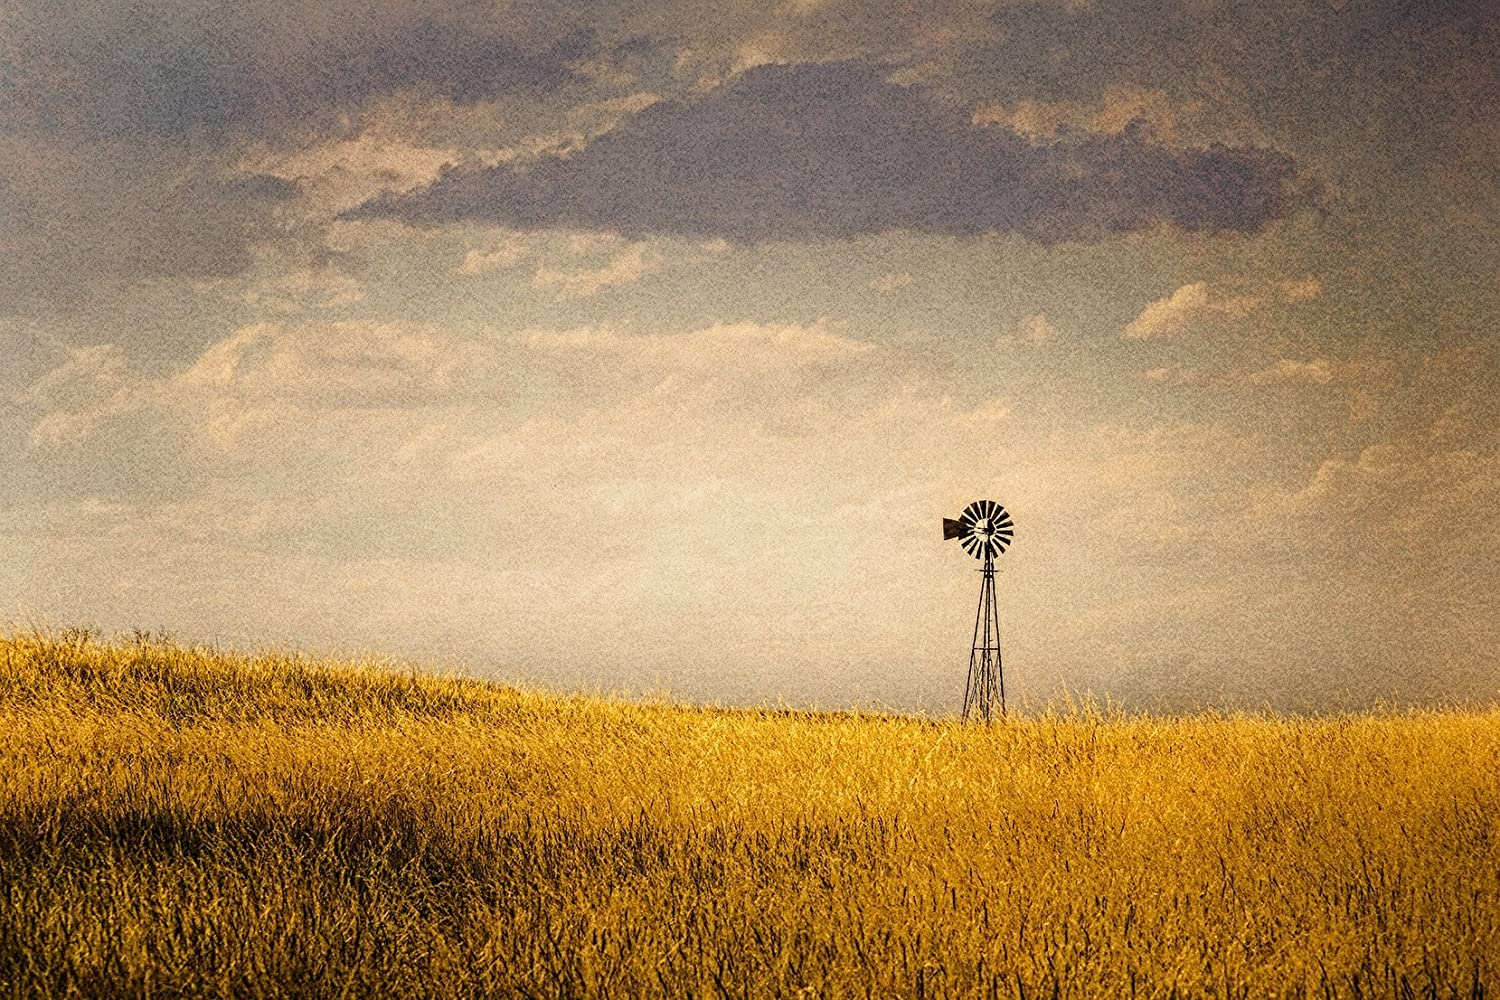 Amazon.com: Windmill Wall Decor Canvas Farmhouse Wall Art Rustic ...